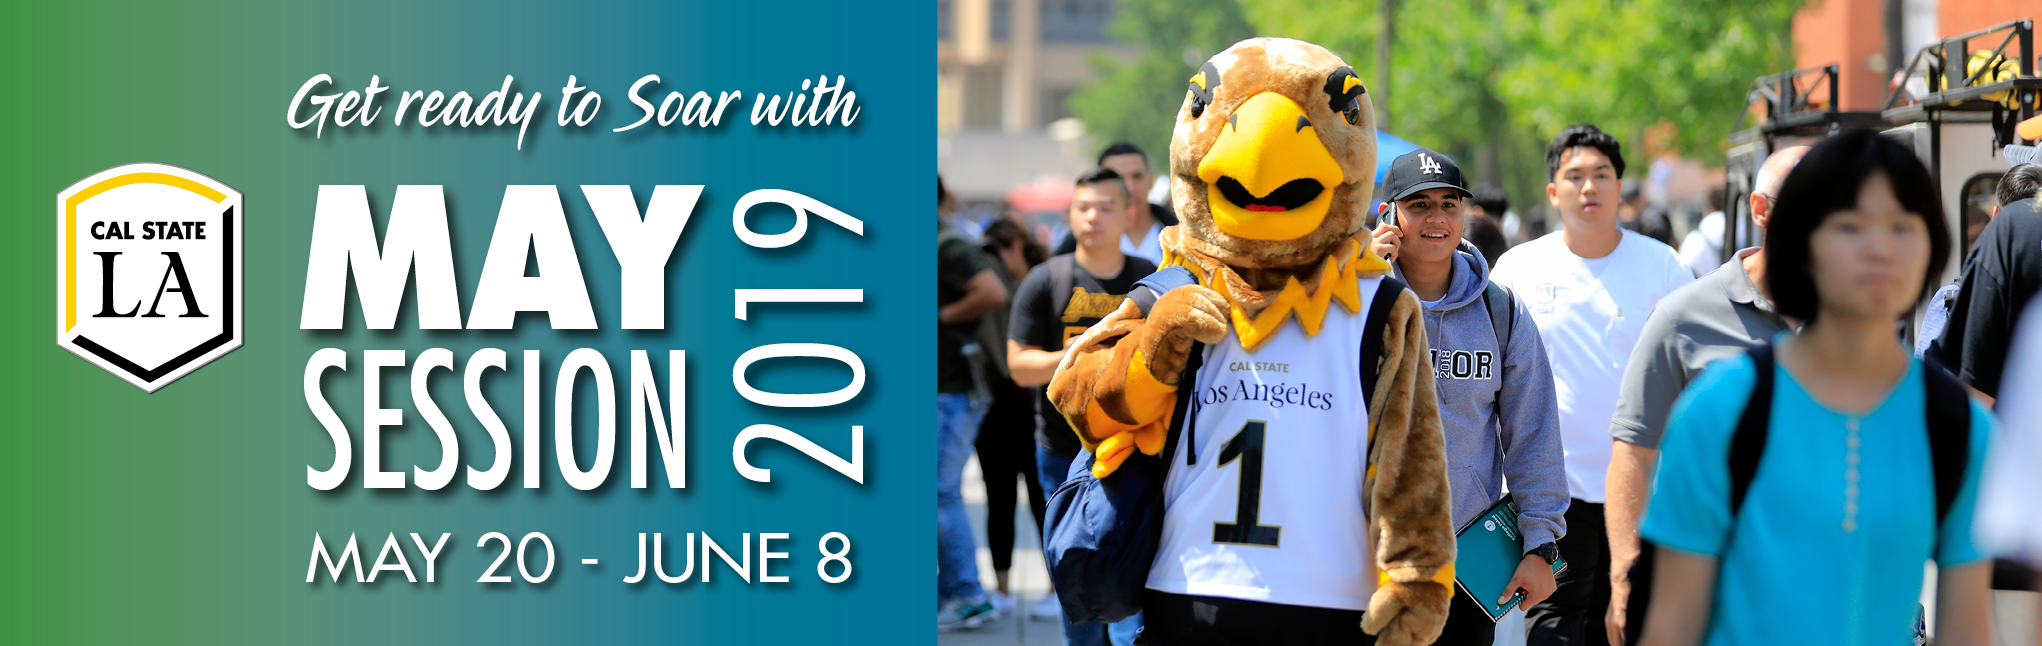 Get ready to Soar with May Session 2019. May 20-June 8